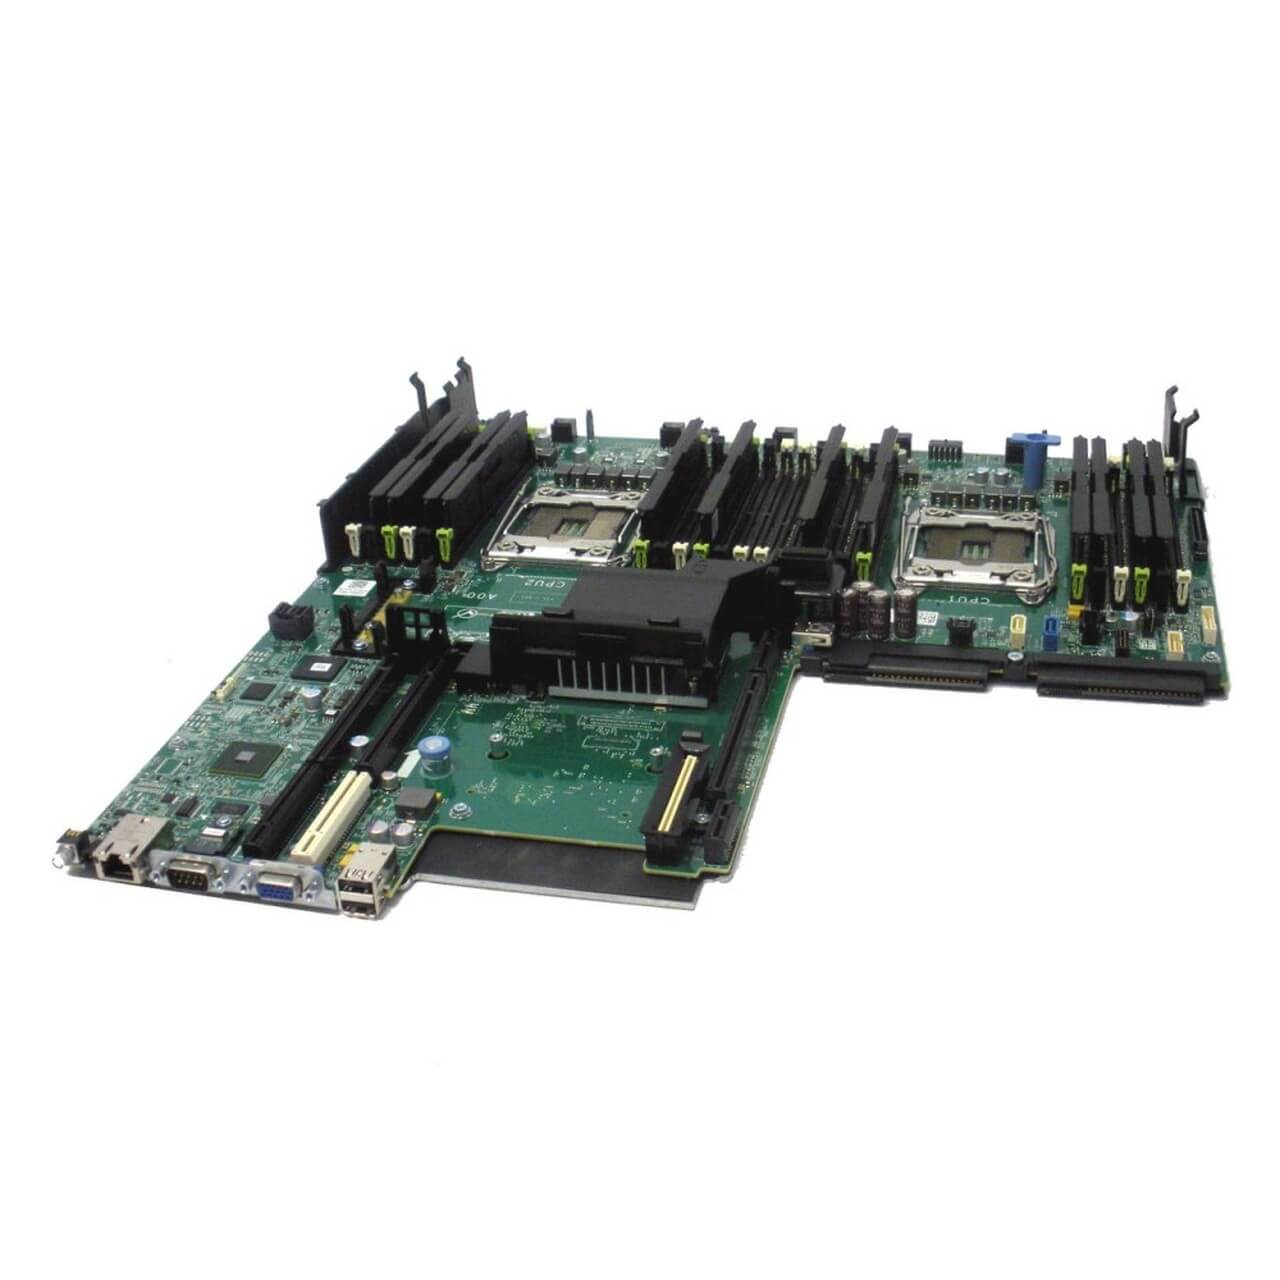 Buy & save on refurbished computer server system boards from your trusted partners at Flagship Technologies.